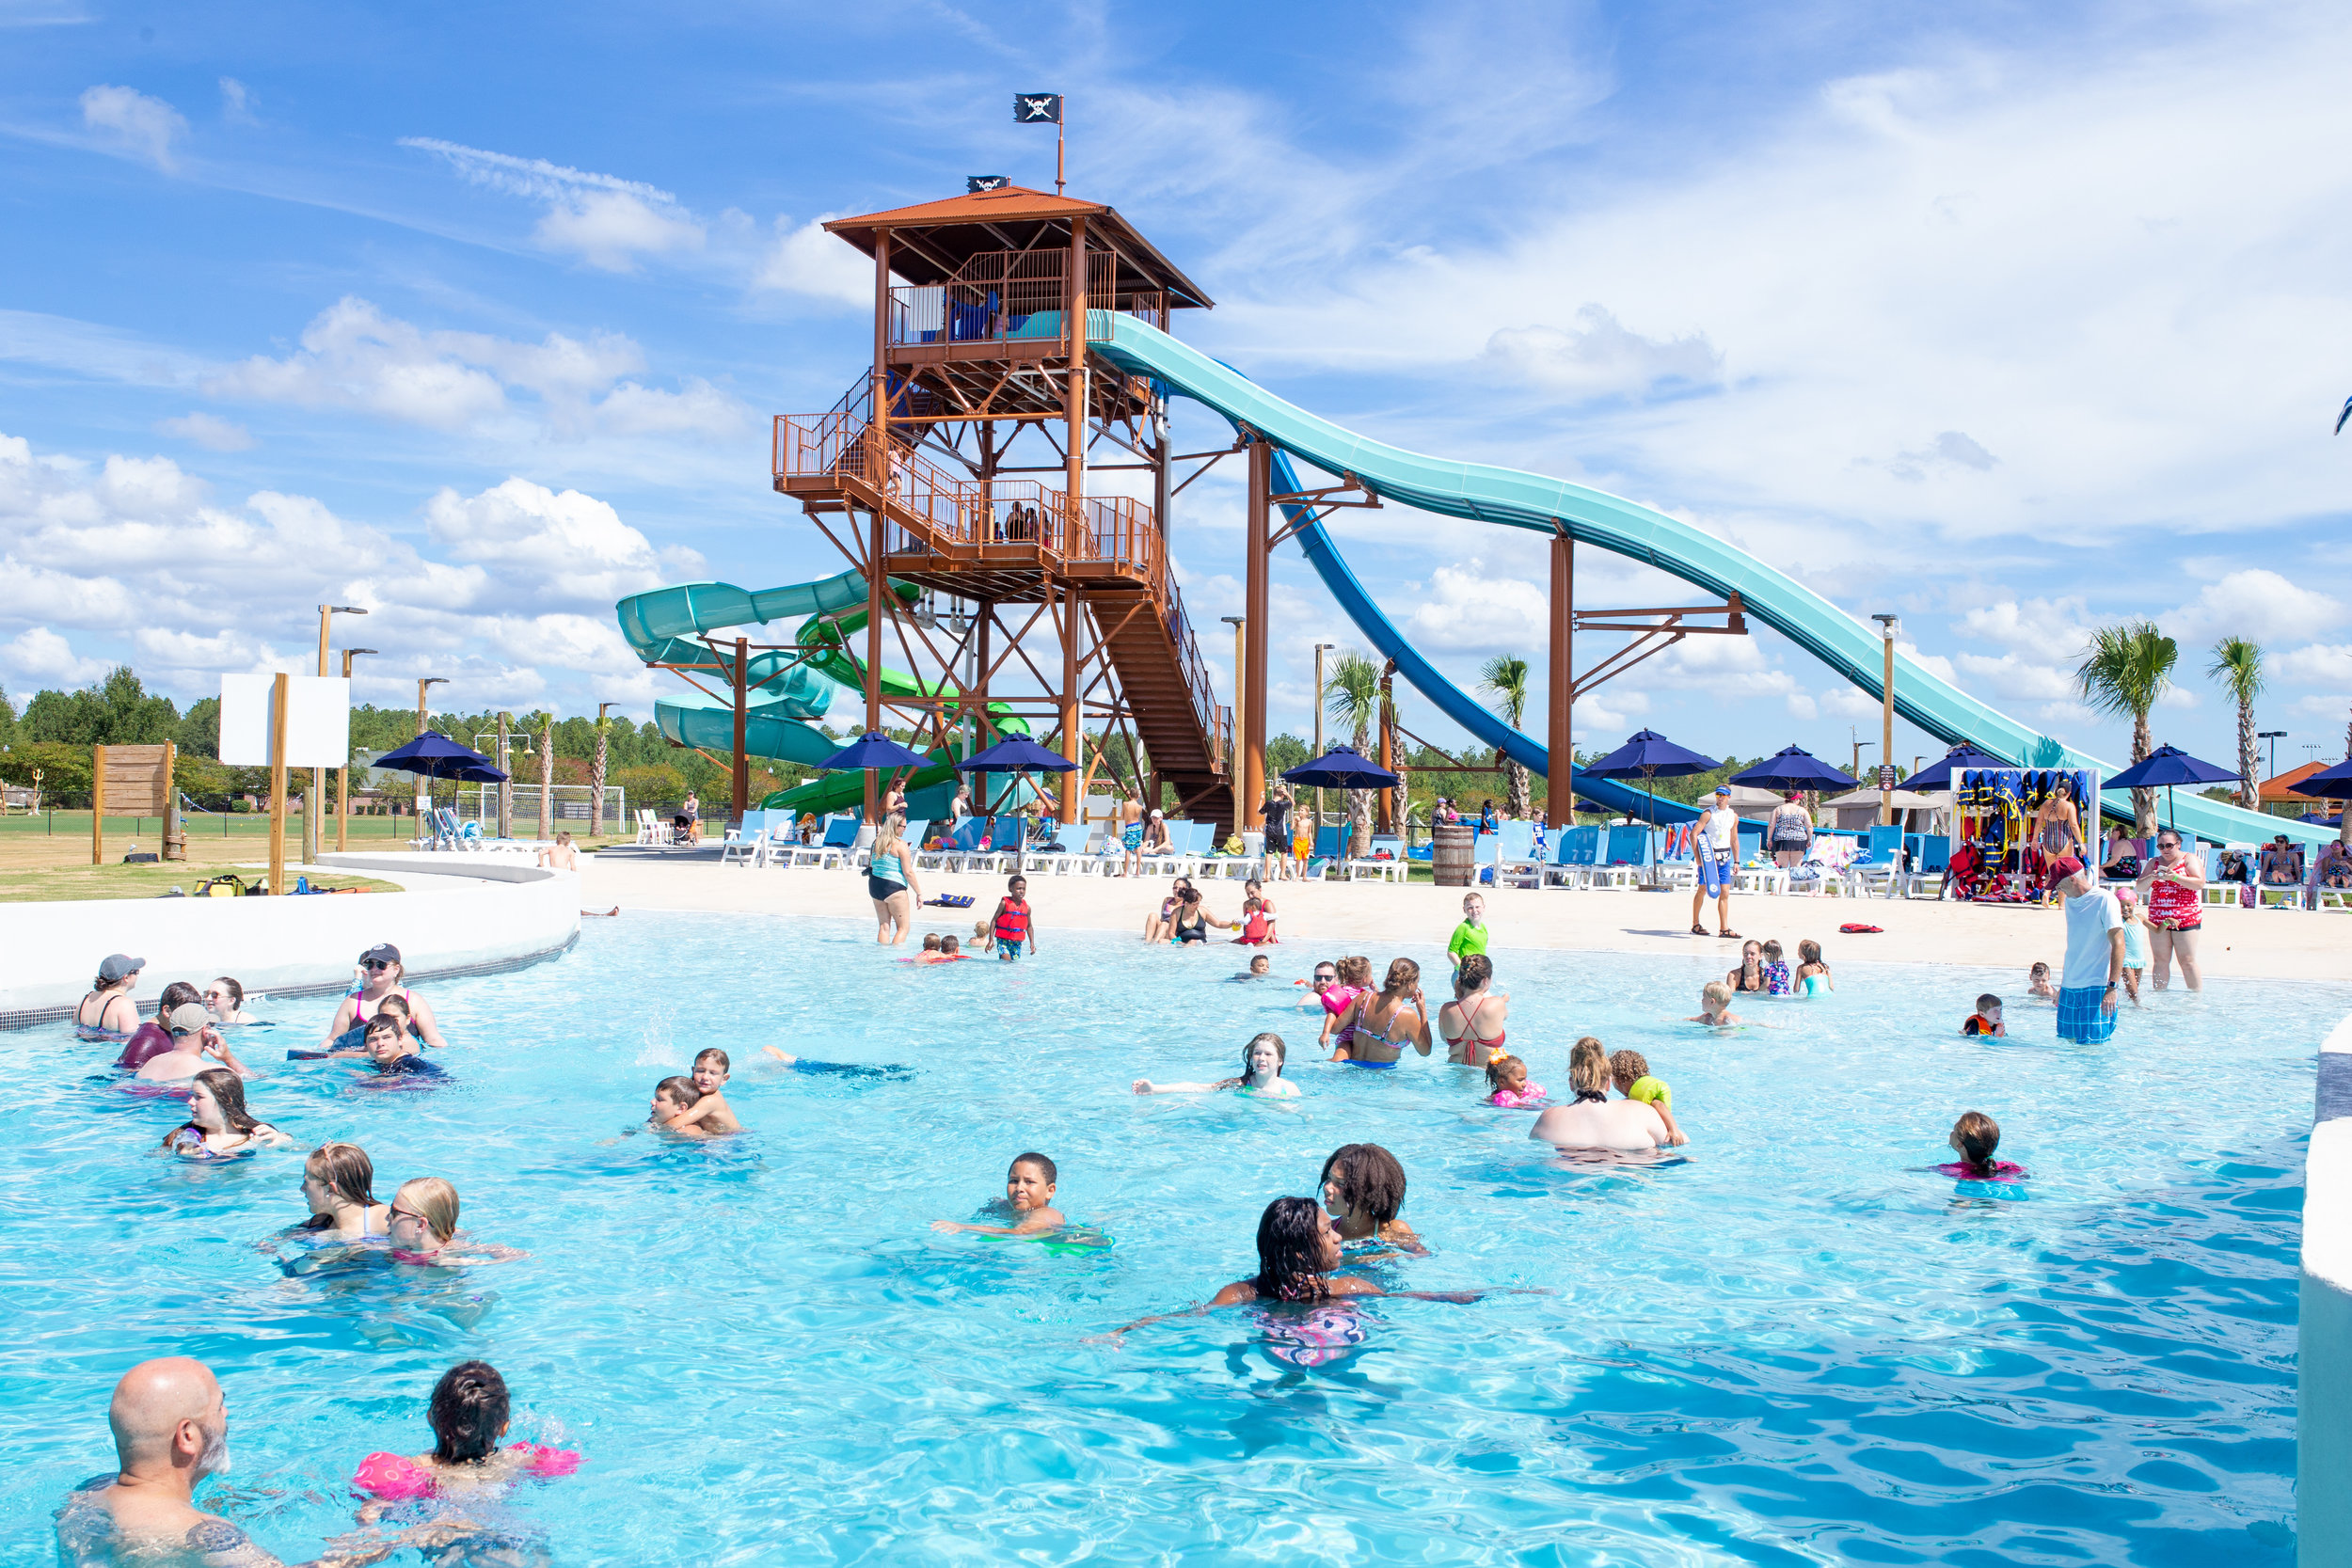 If you like to have fun in the sun, you're going to LOVE Neptune Island Waterpark! Complete with slides from mild to wild and lots of places to relax and lounge in the shade or in the sun. Plus, private cabanas are also available to rent for that special summer occasion. -